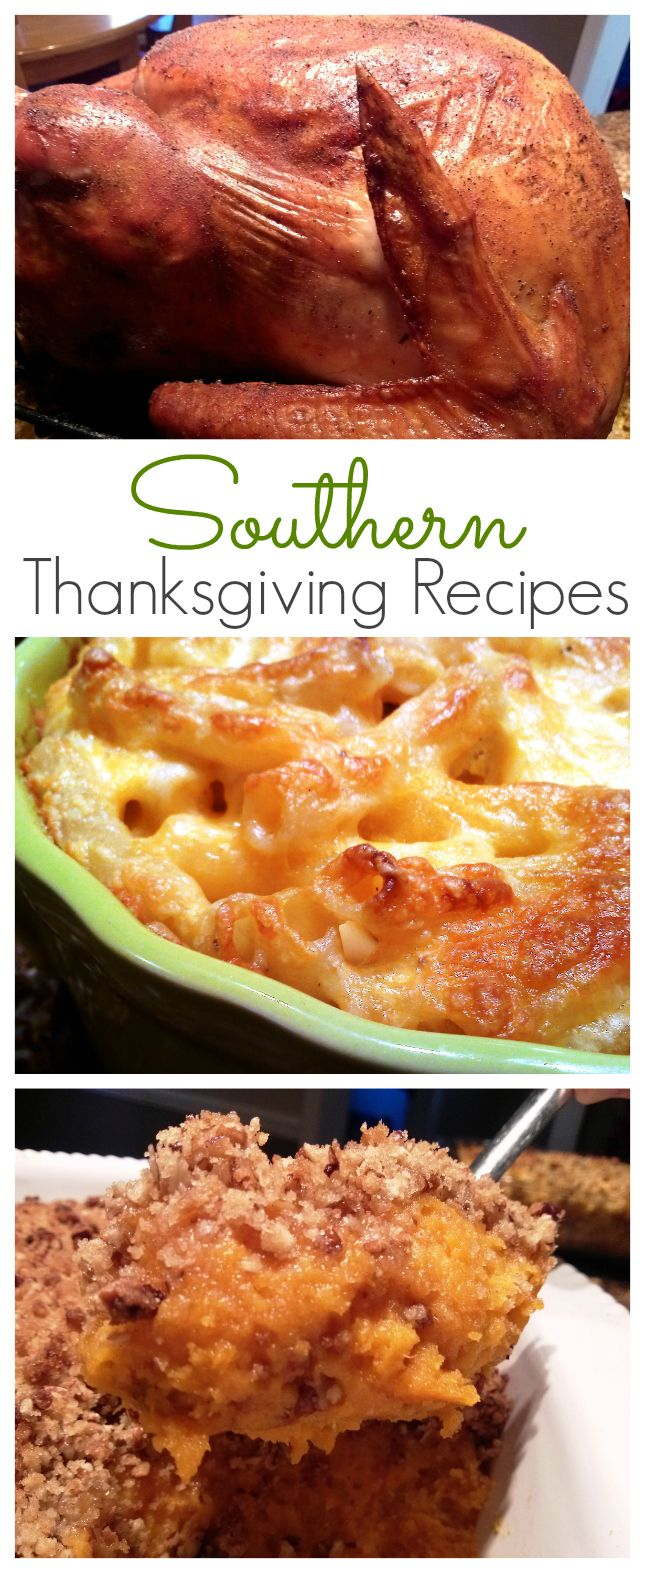 16 scratch-made Thanksgiving recipes including Jive Turkey, Cola-Cola Glazed Ham, Baked Macaroni & Cheese, Mama's Cornbread